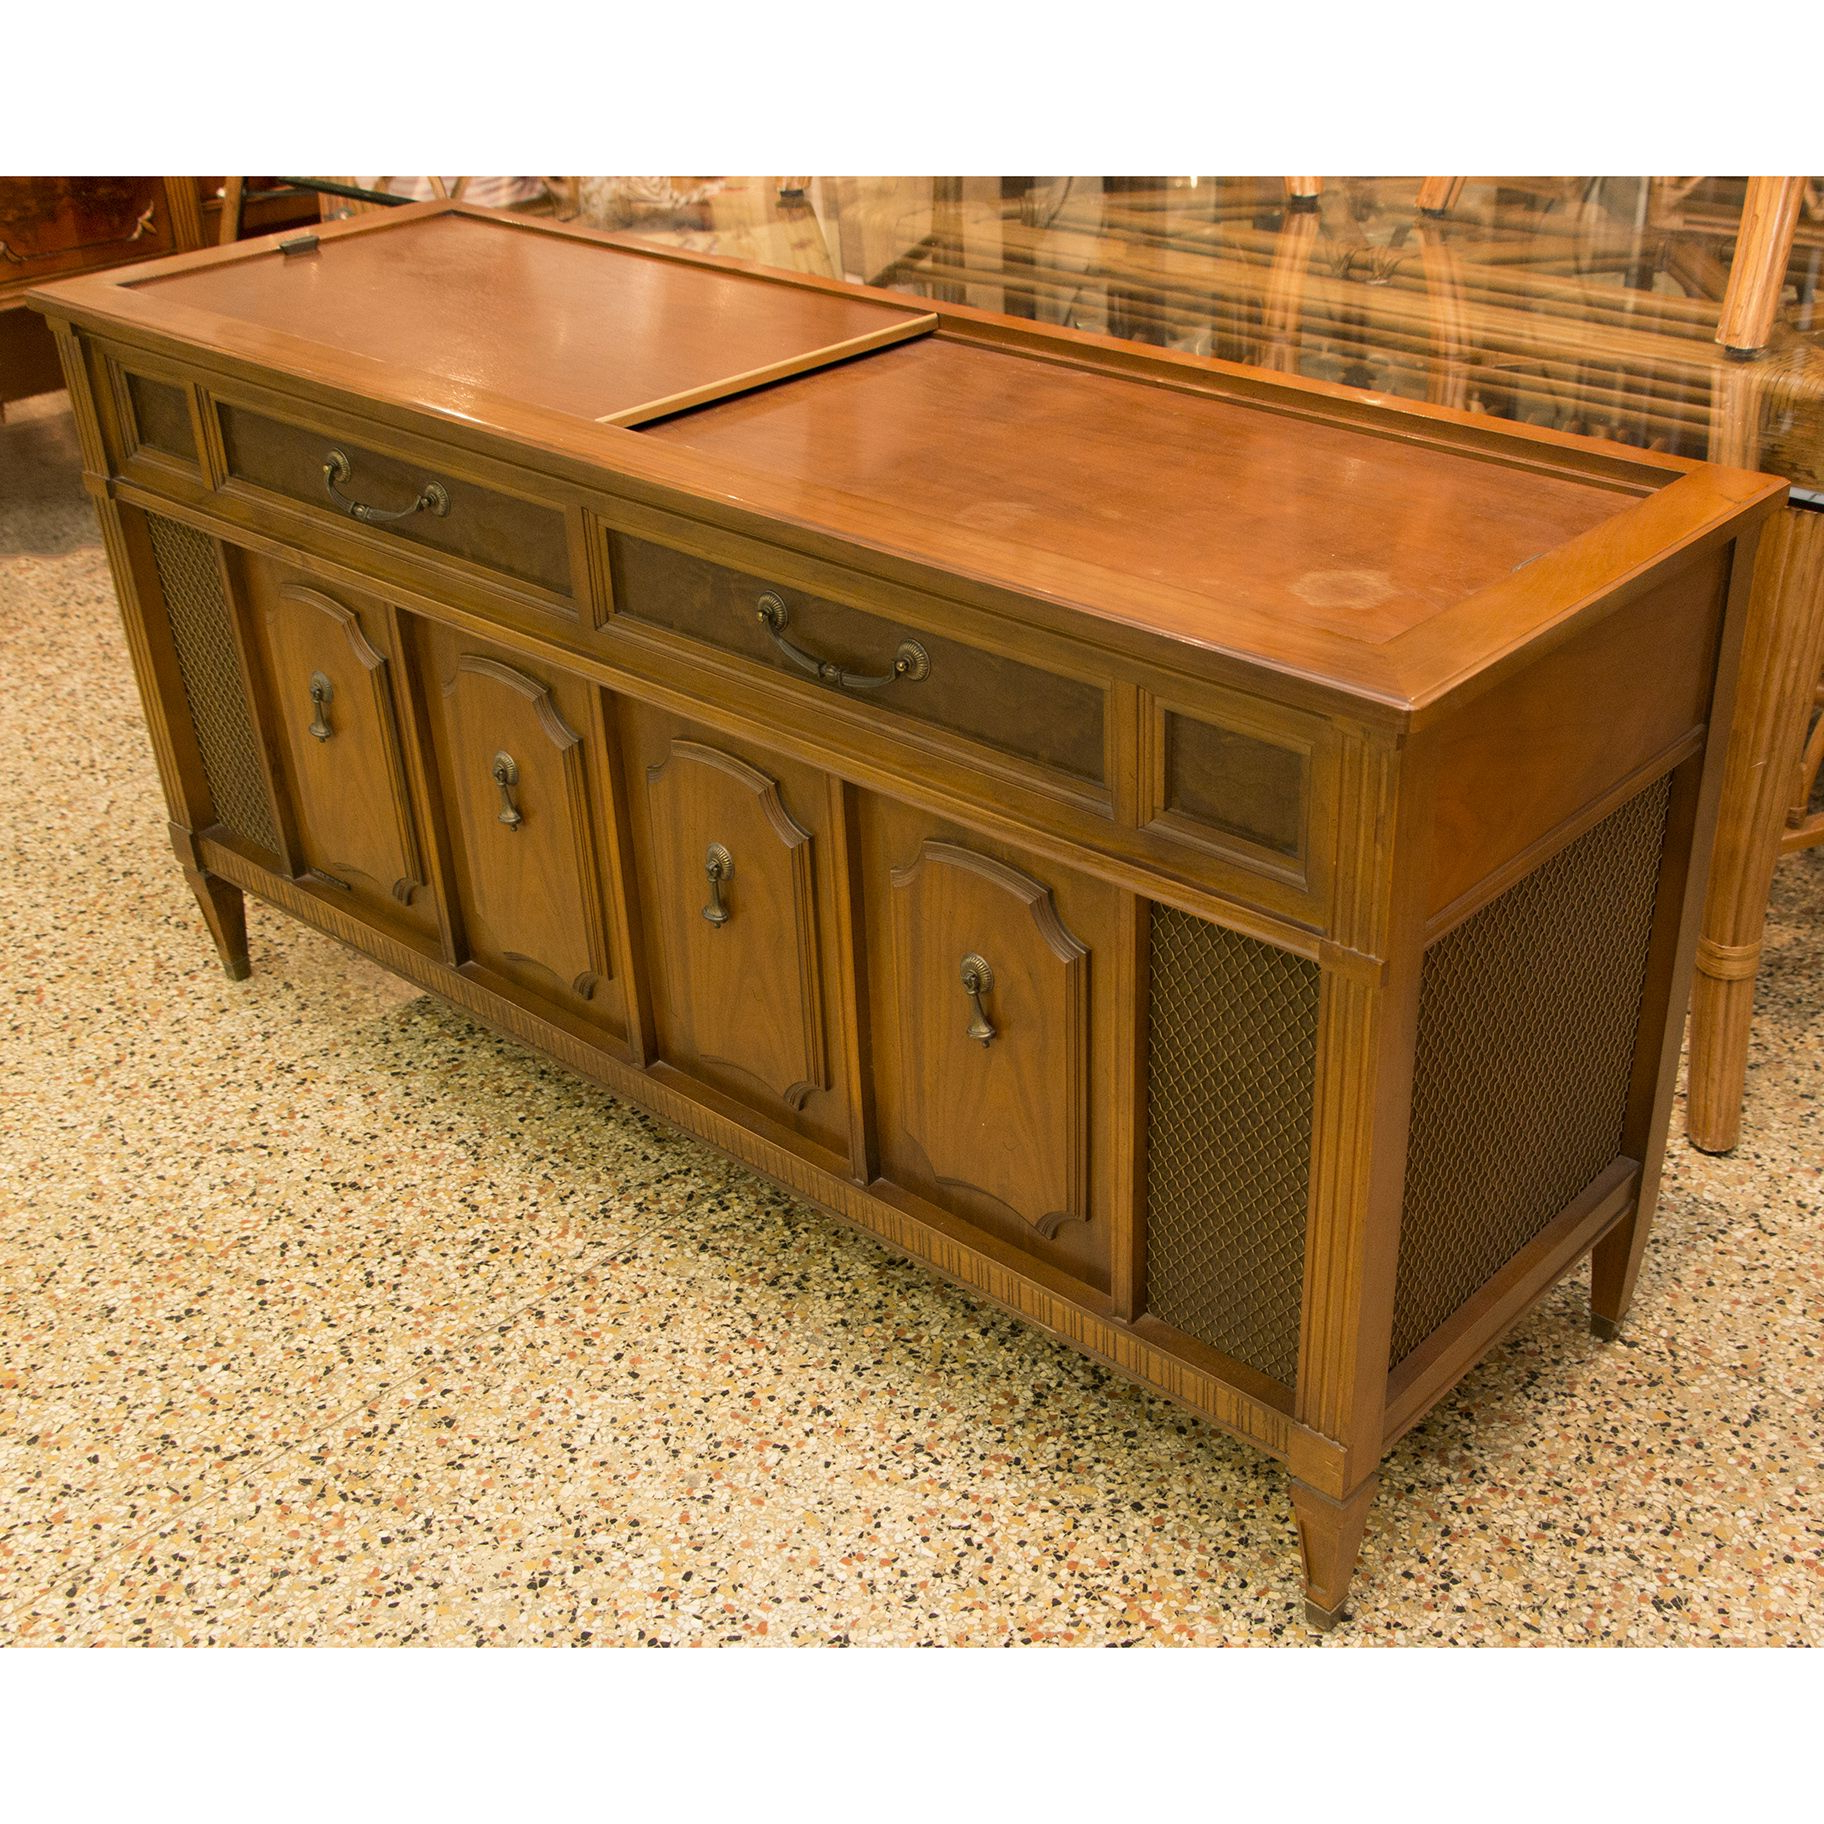 Vintage 1970S Magnavox Stereo Console With A Sliding Top Regarding Most Up To Date Upper Stanton Sideboards (View 18 of 20)